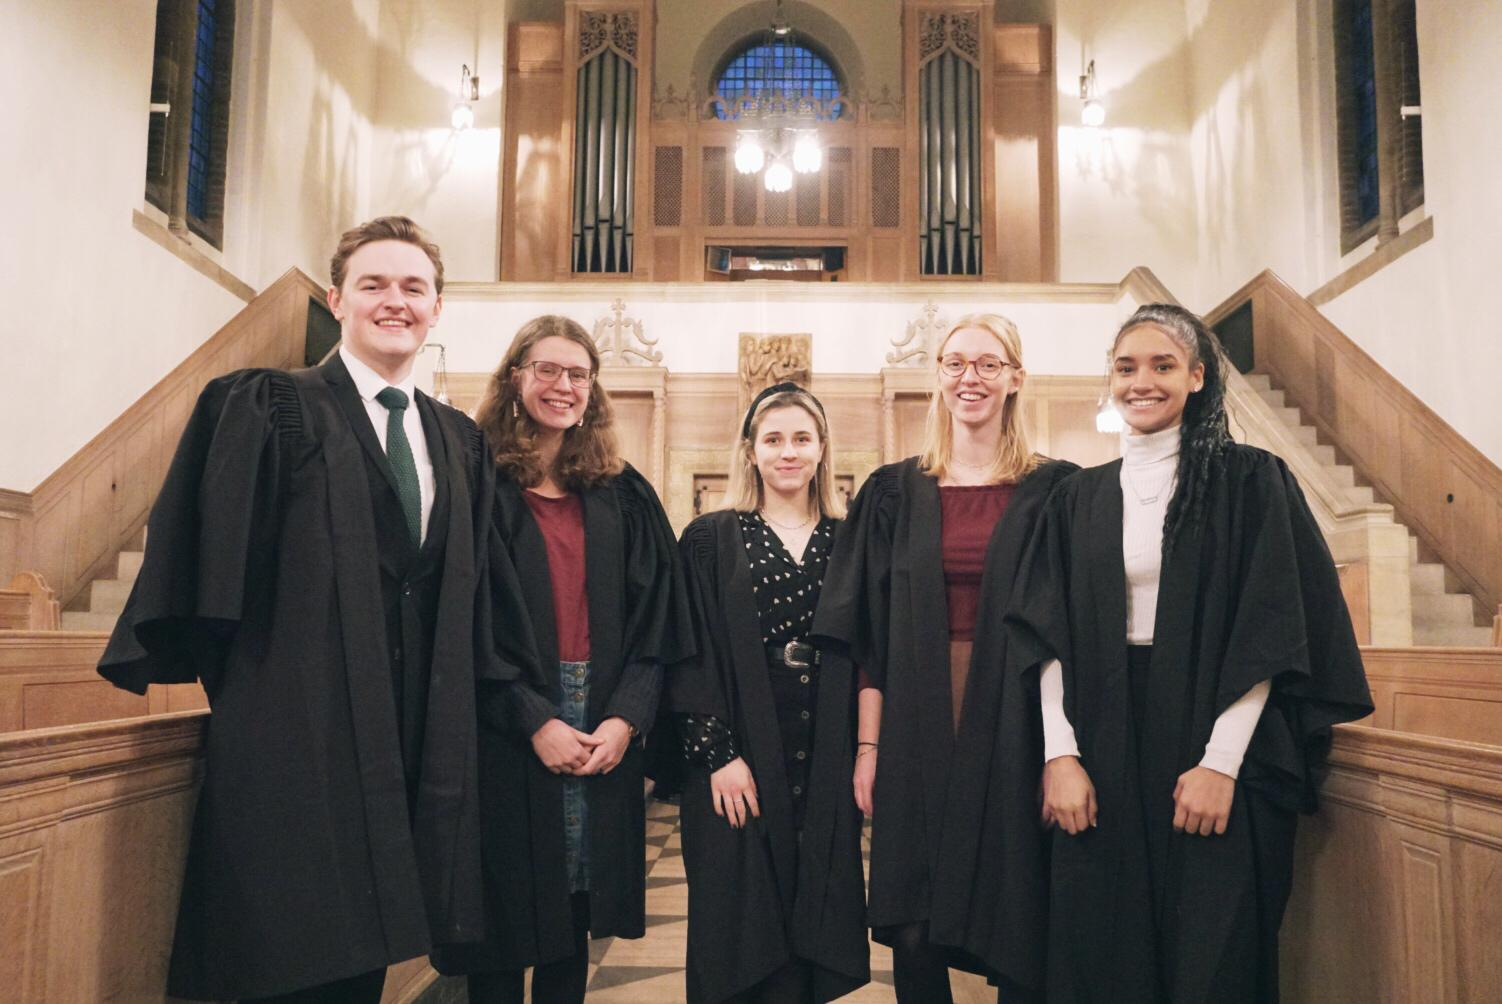 A picture of five LMH Choir Scholars standing together in the LMH Chapel.